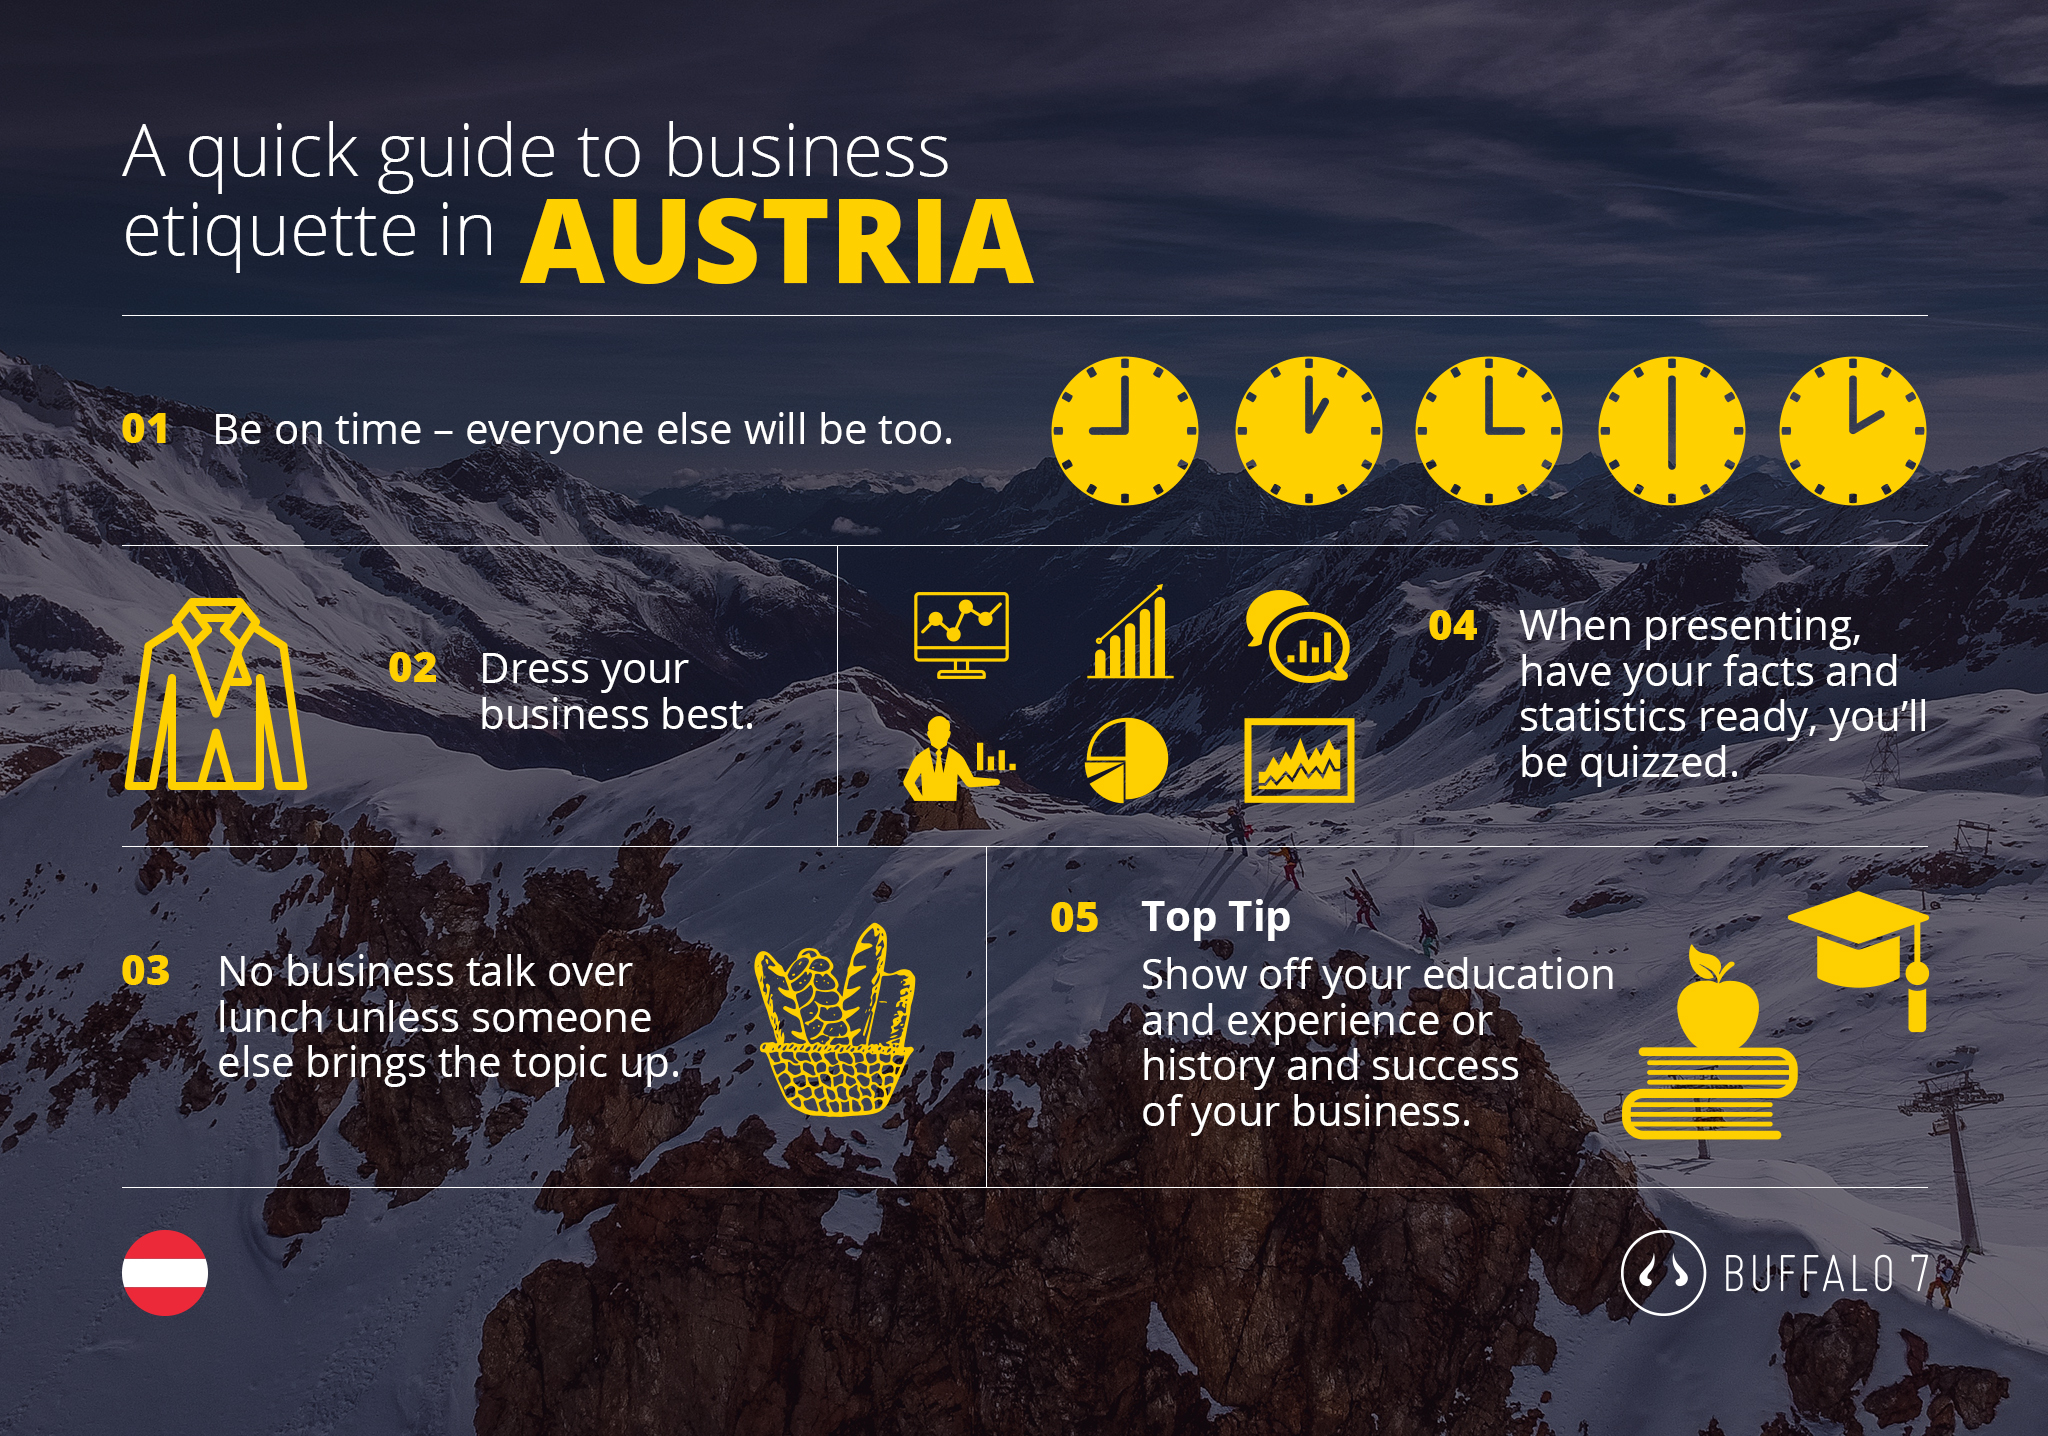 tips on austrian business etiquette